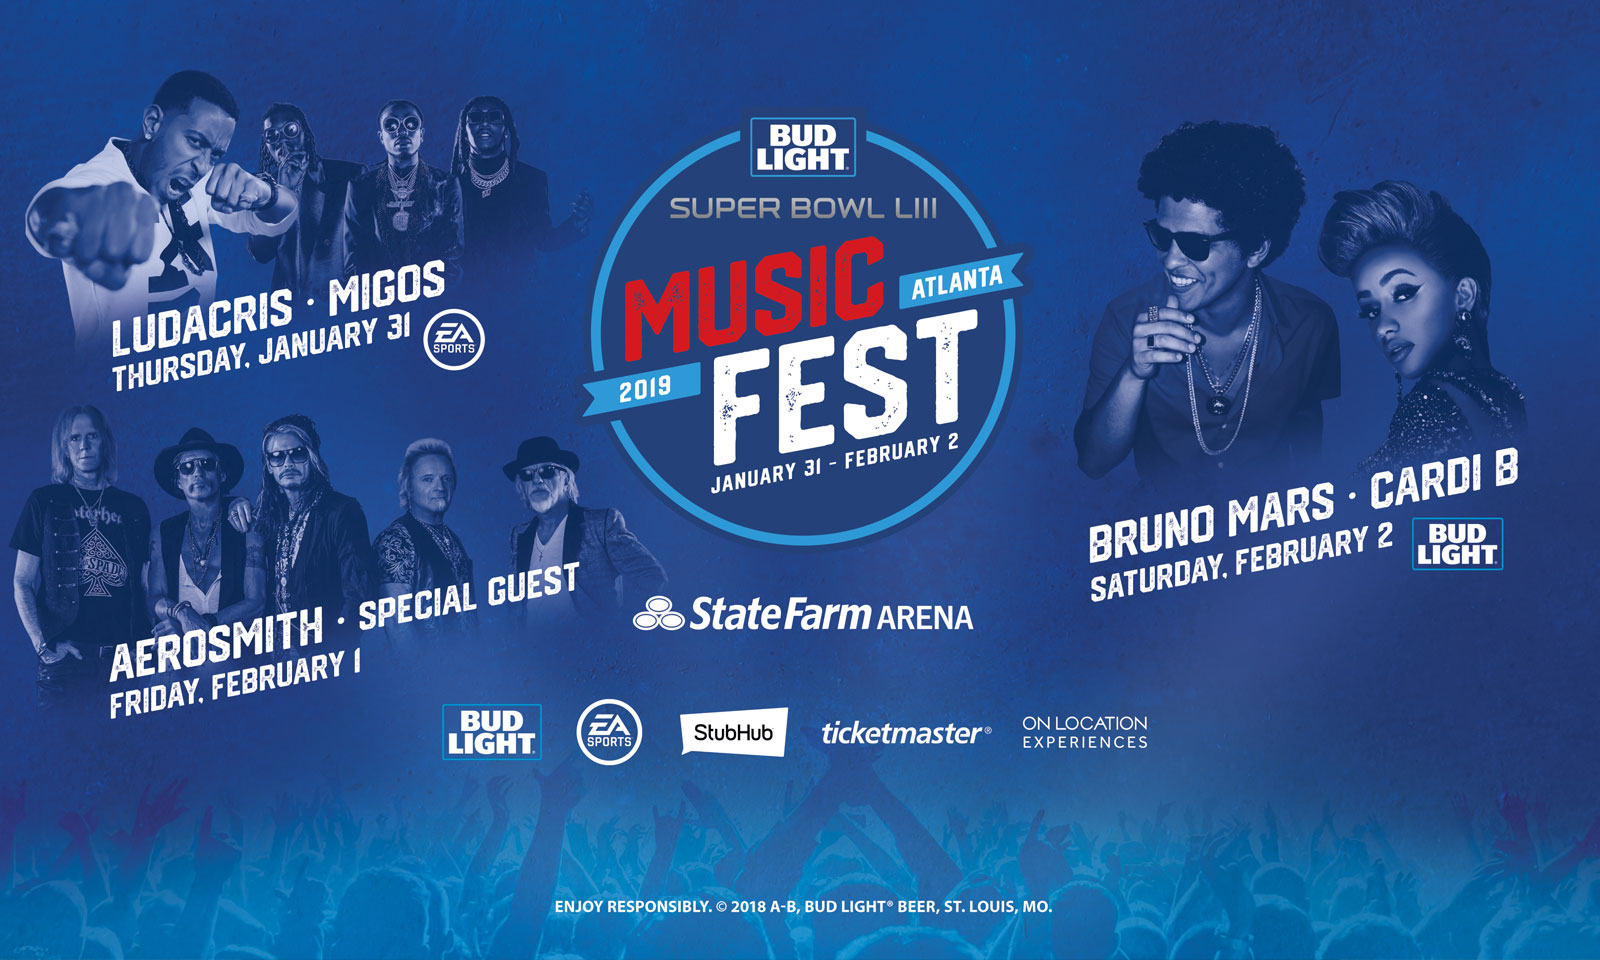 The Bud Light Super Bowl Music Fest